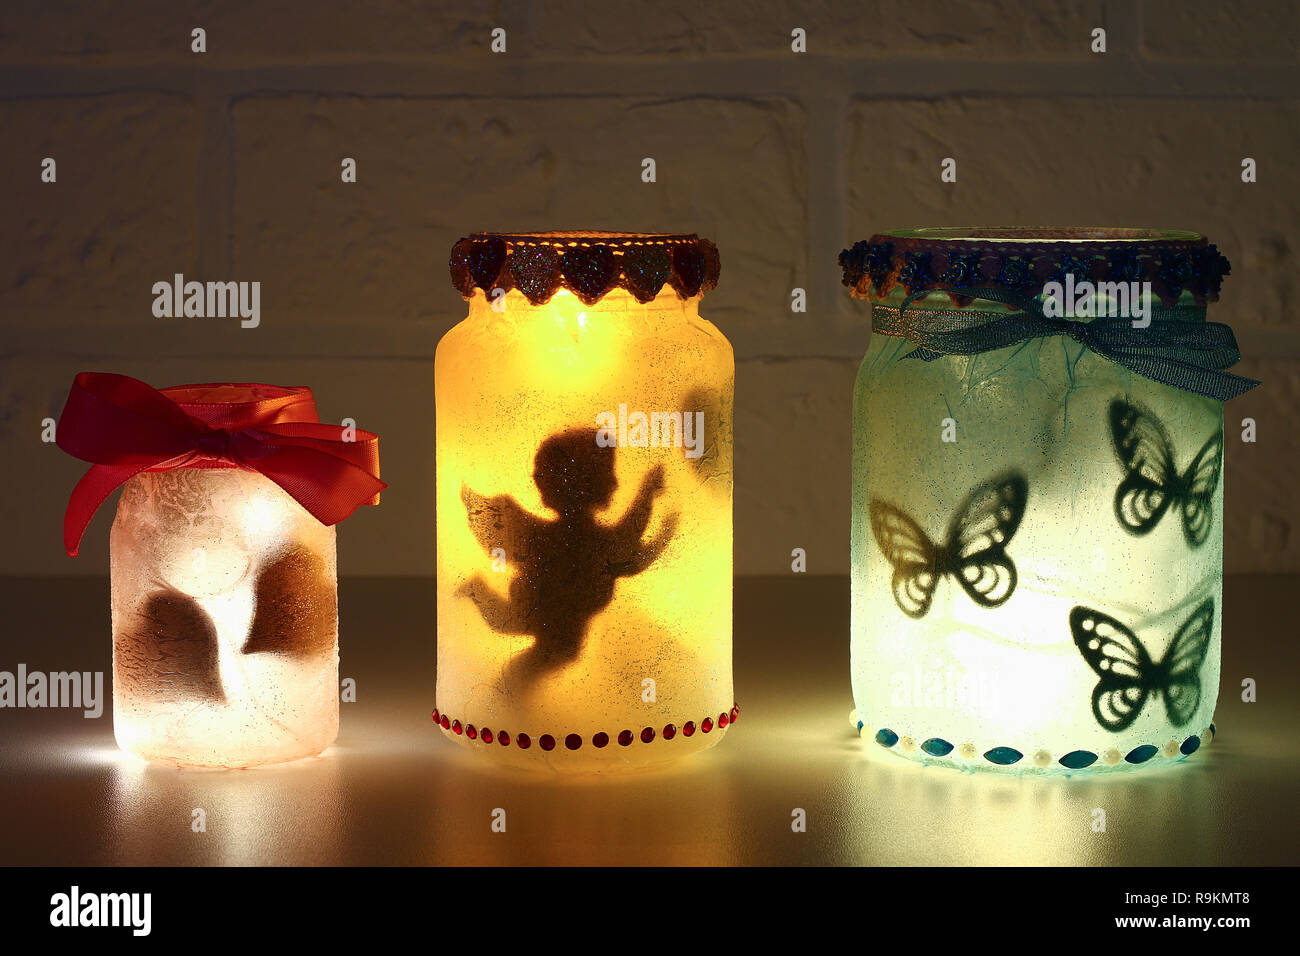 Diy Fairy Jar On White Brick Wall Background Gift Ideas Decor St February 14 Valentines Day Love Wedding Handmade Lamp Night Light Lantern Fro Stock Photo Alamy